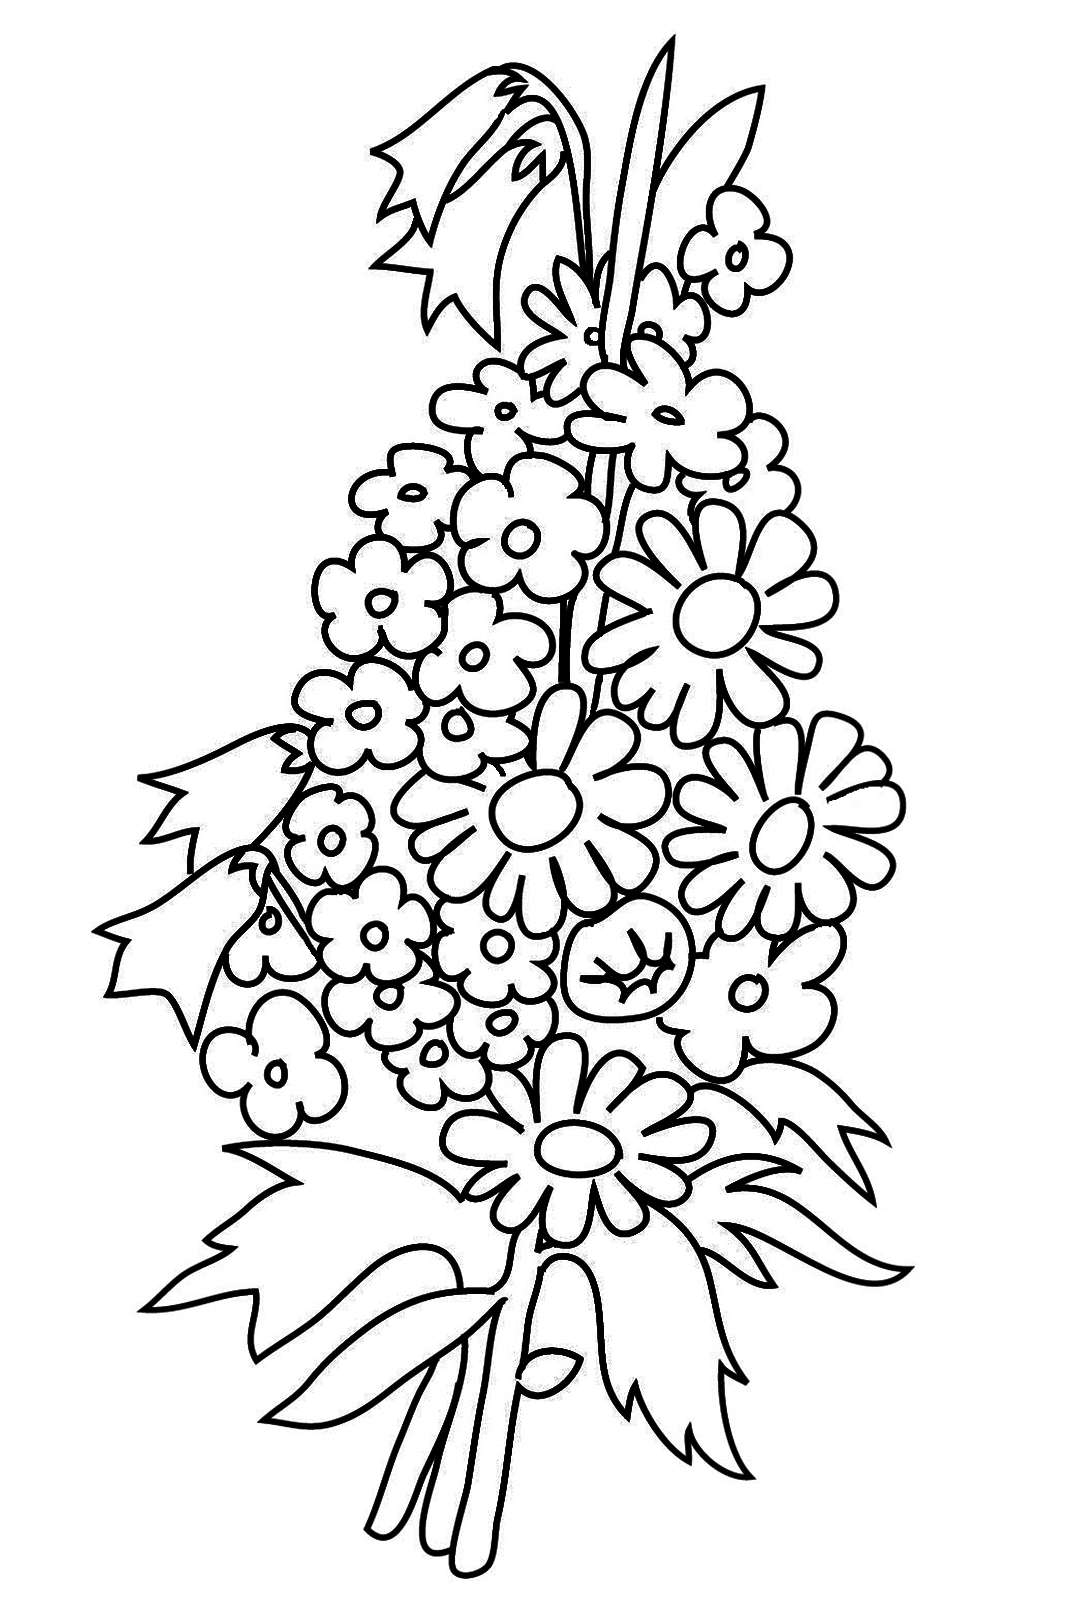 coloring pages about flowers free printable flower coloring pages for kids best about flowers coloring pages